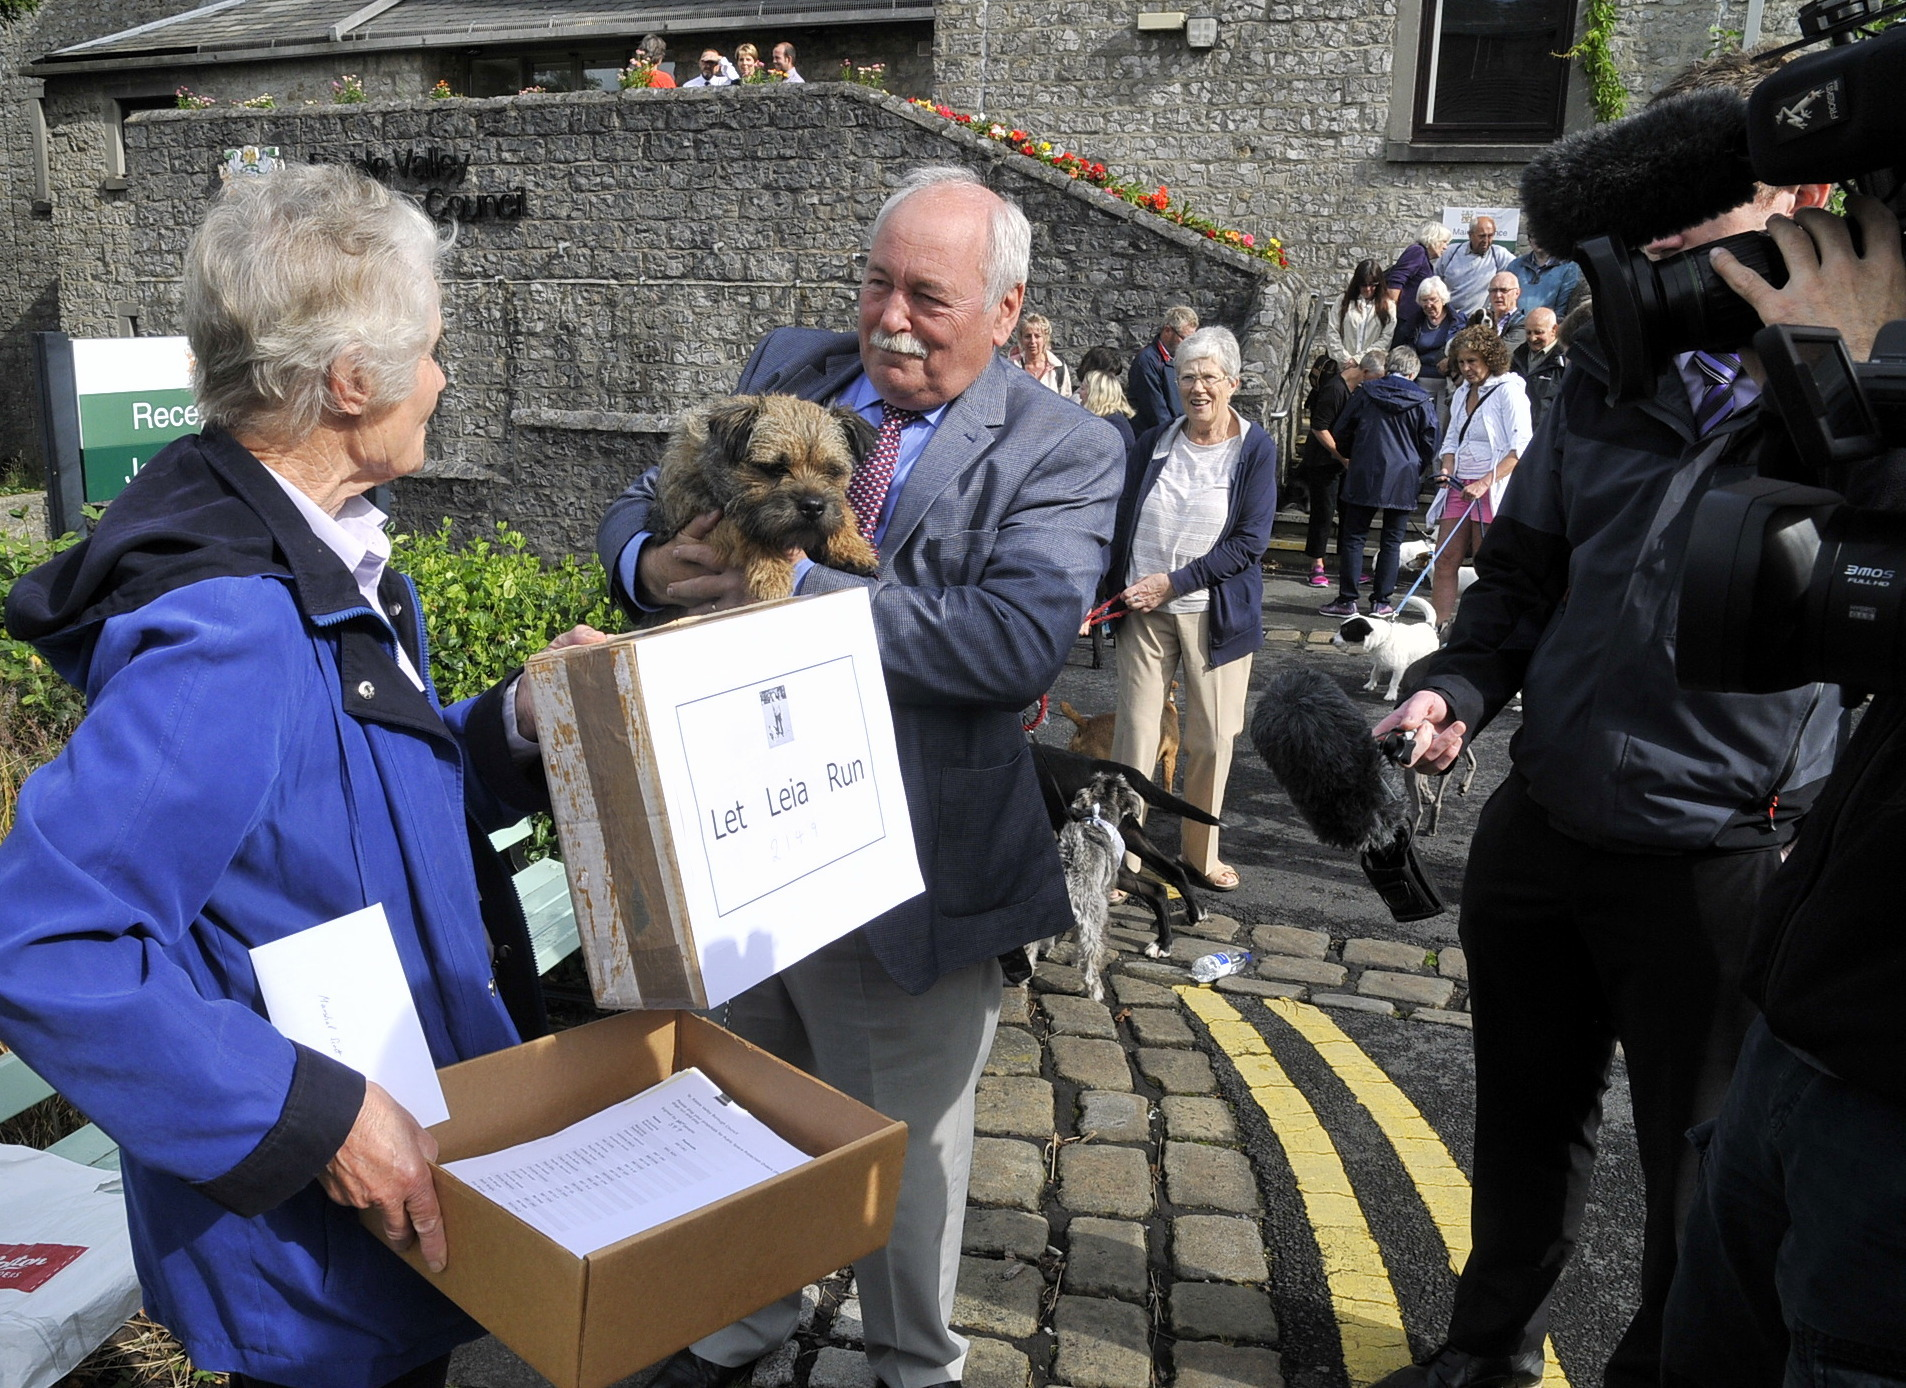 Penny Pitty handing over the petition to Cllr Ken Hind the leader of Ribble Valley Borough Council and his dog 'Jasper' in August